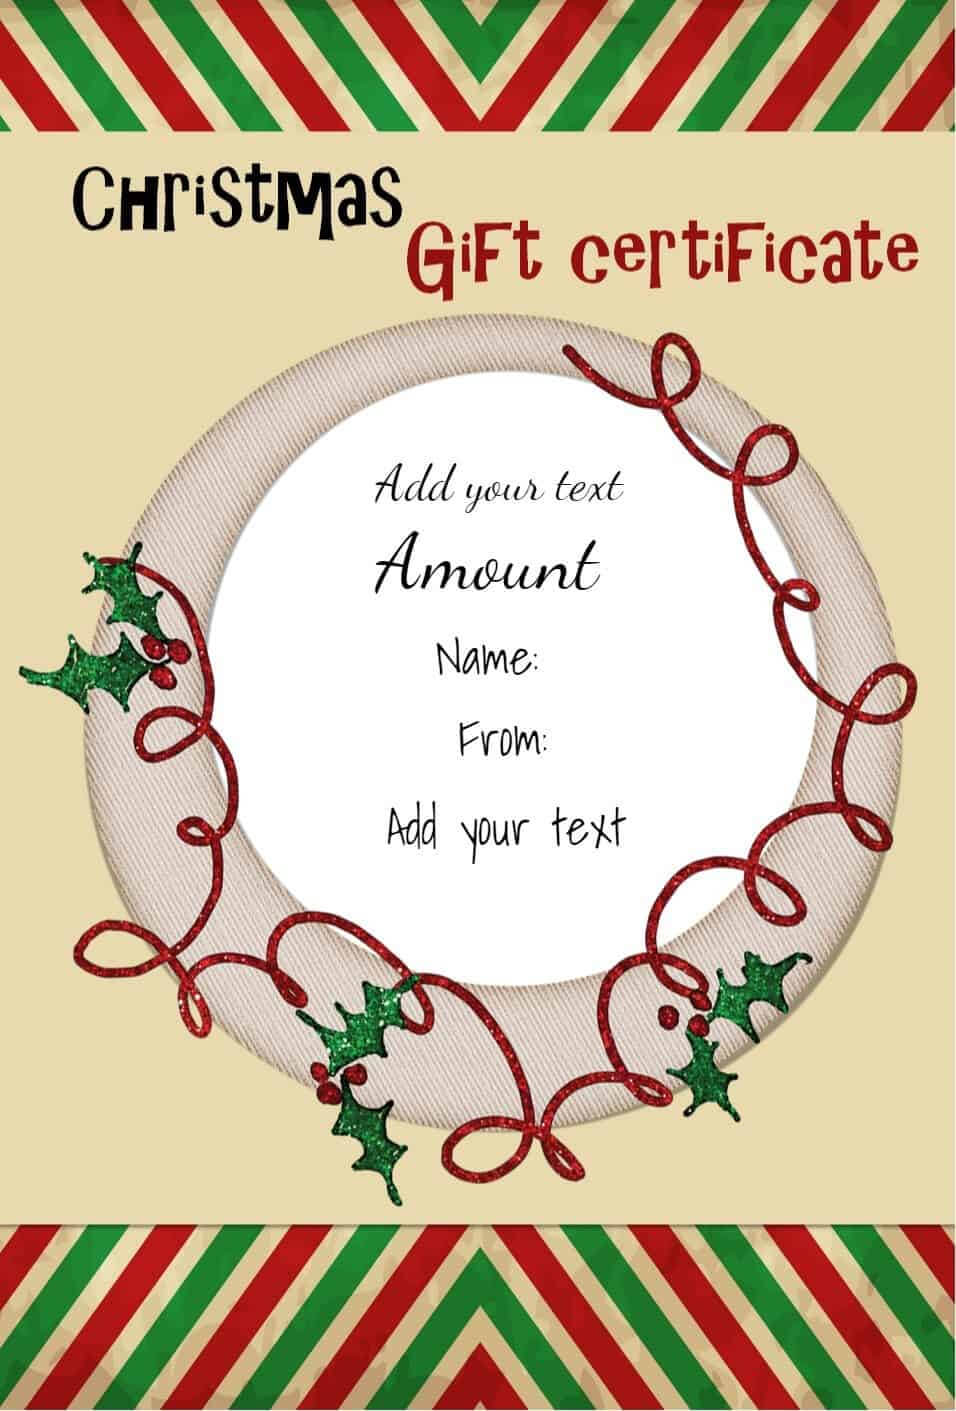 Free Christmas Gift Certificate Template | Customize Online With Christmas Gift Certificate Template Free Download